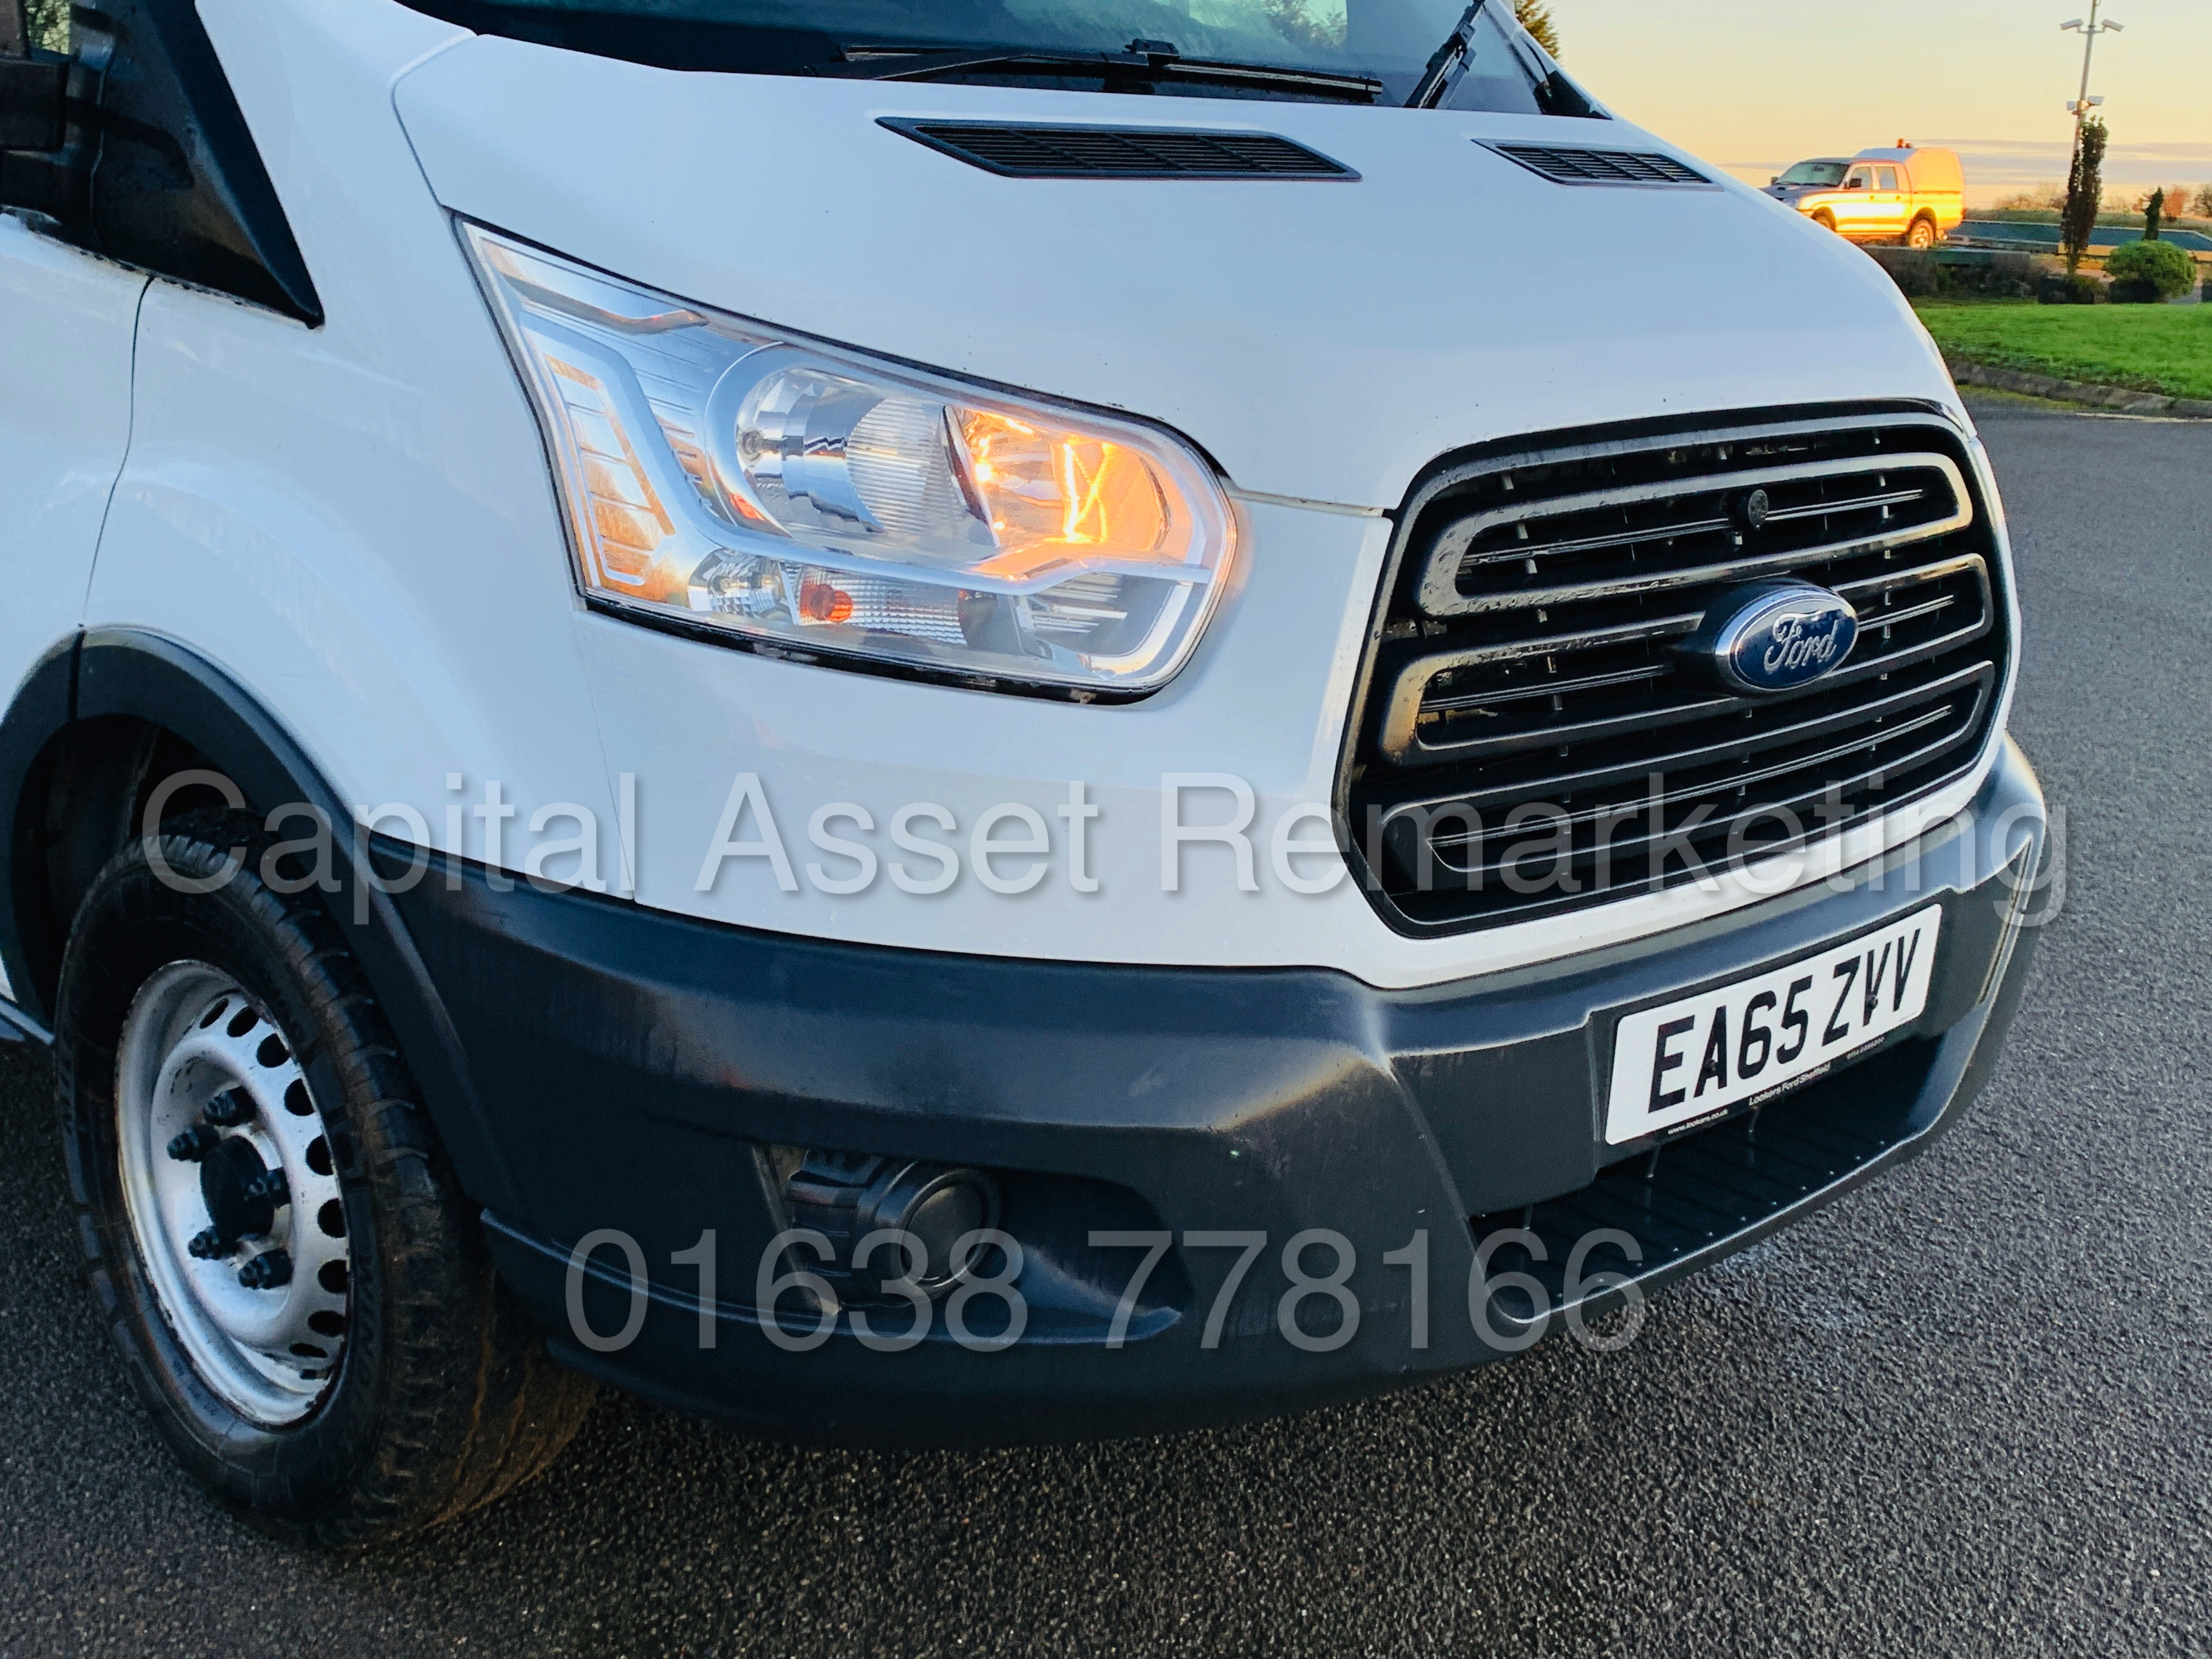 (On Sale) FORD TRANSIT T350 *LWB - REFRIGERATED VAN* (65 REG) '2.2 TDCI -125 BHP- 6 SPEED' (1 OWNER) - Image 13 of 43